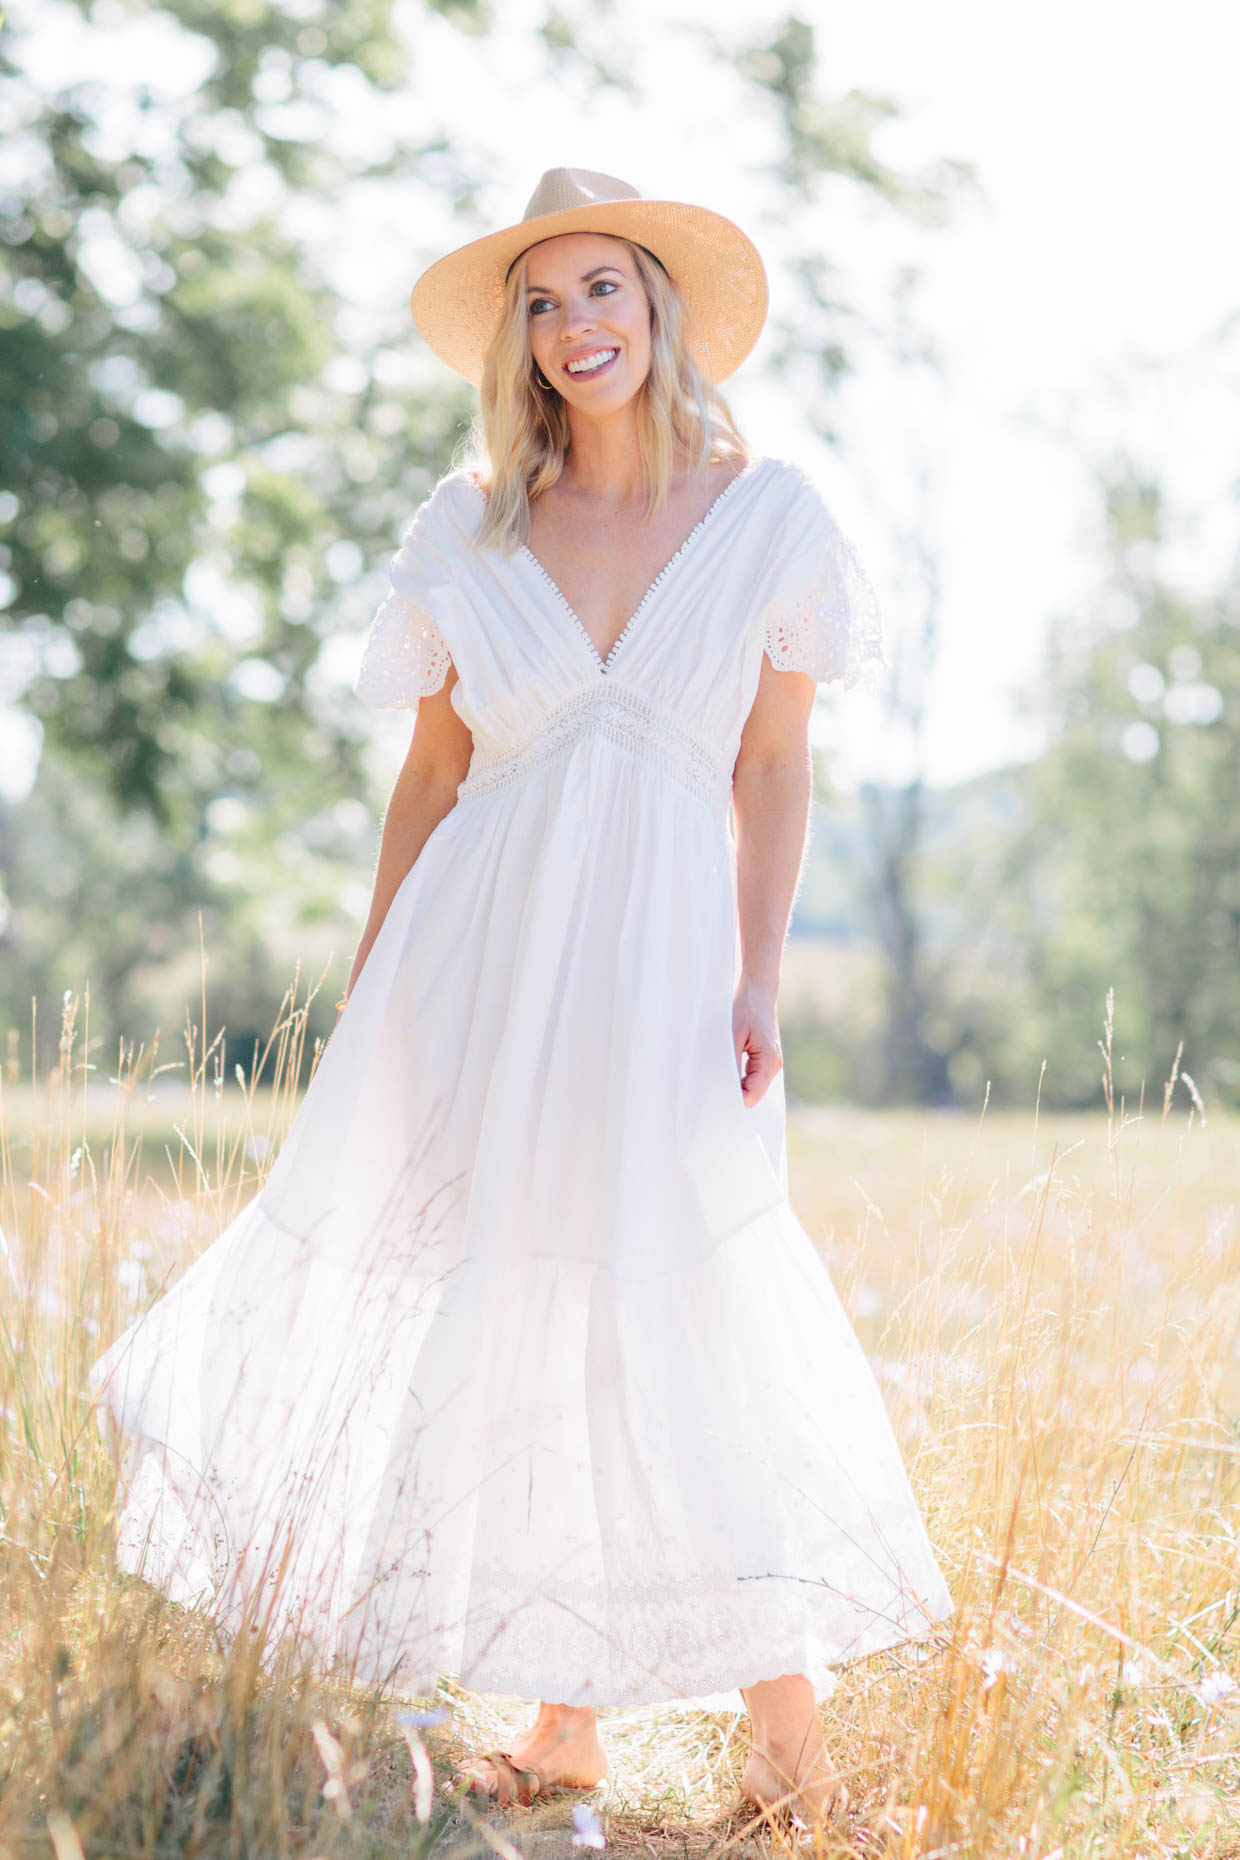 Meagan Brandon fashion blogger of Meagan's Moda wears Chicwish white eyelet maxi dress with Janessa Leone straw hat